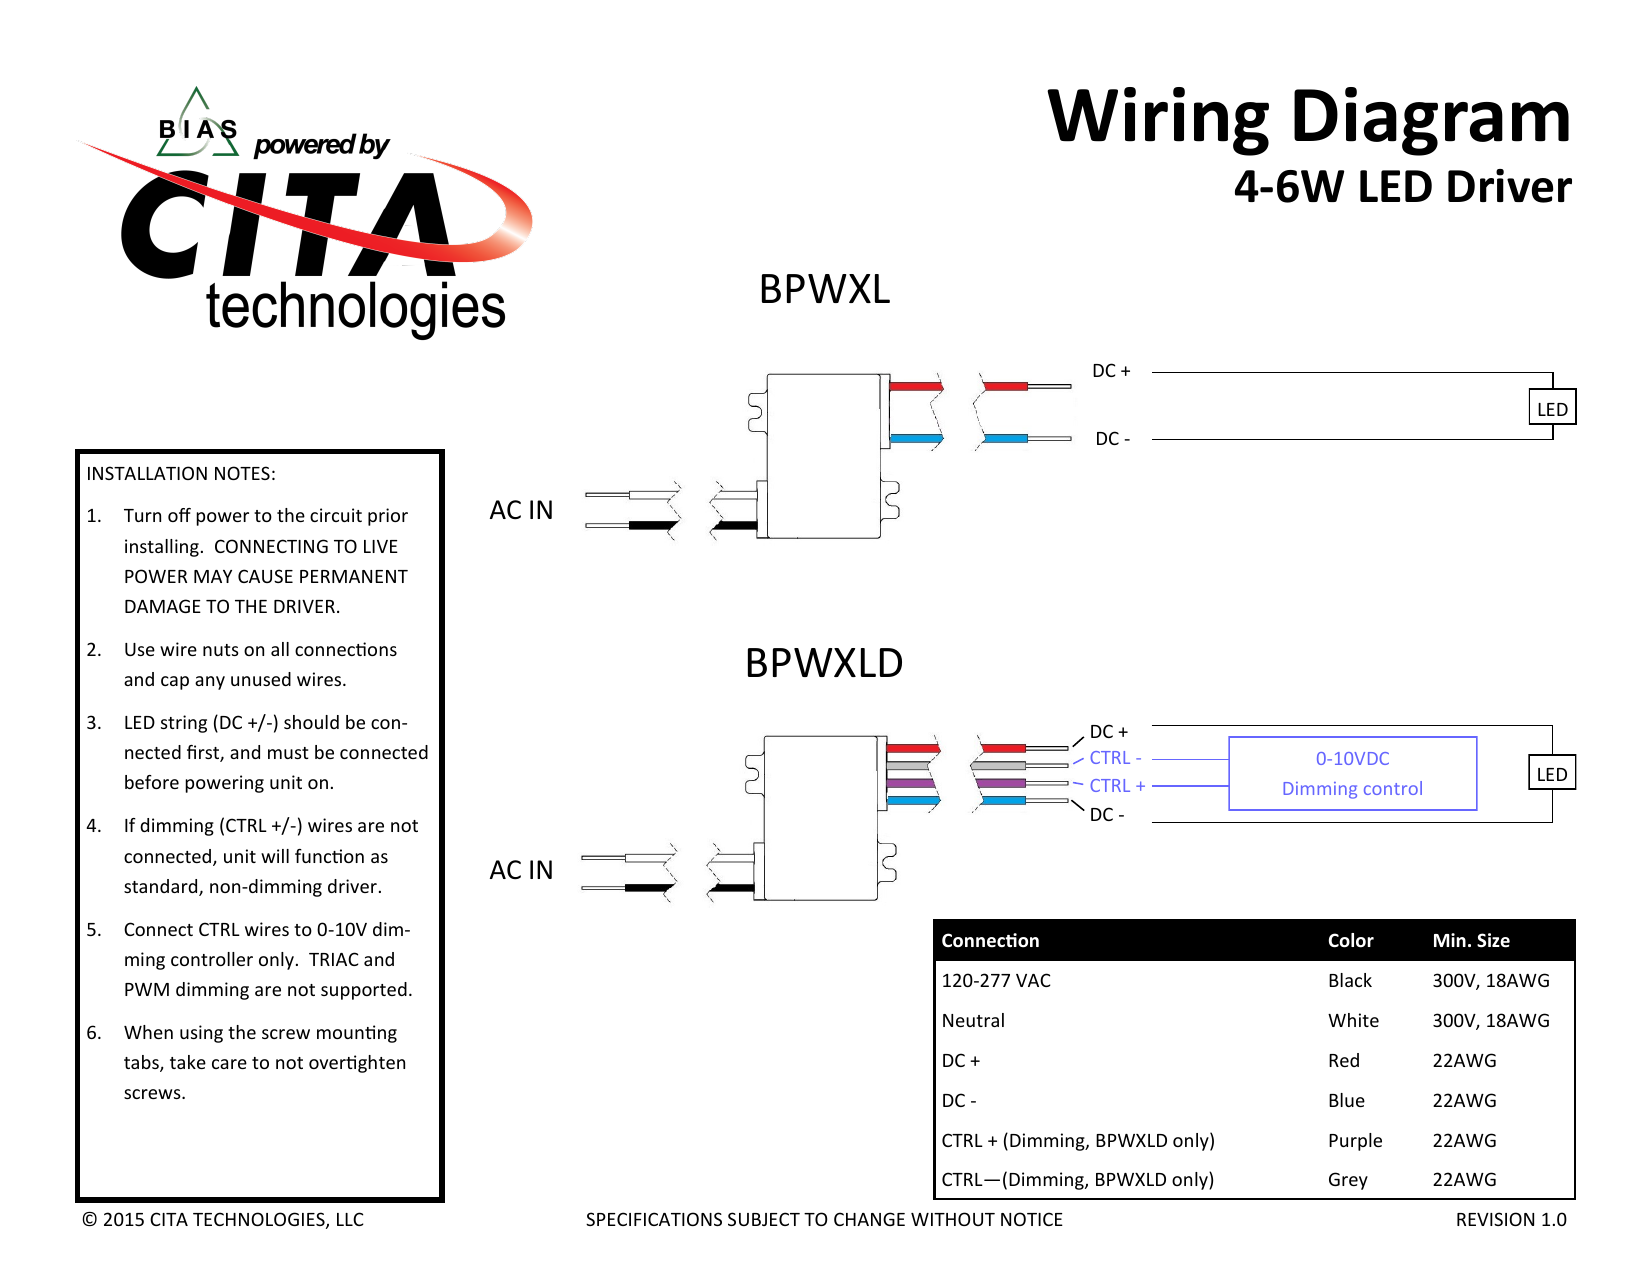 wiring diagram 4-6w led driver bpwxl dc + led dc installation notes: 1   turn off power to the circuit prior installing  connecting to live power  may cause